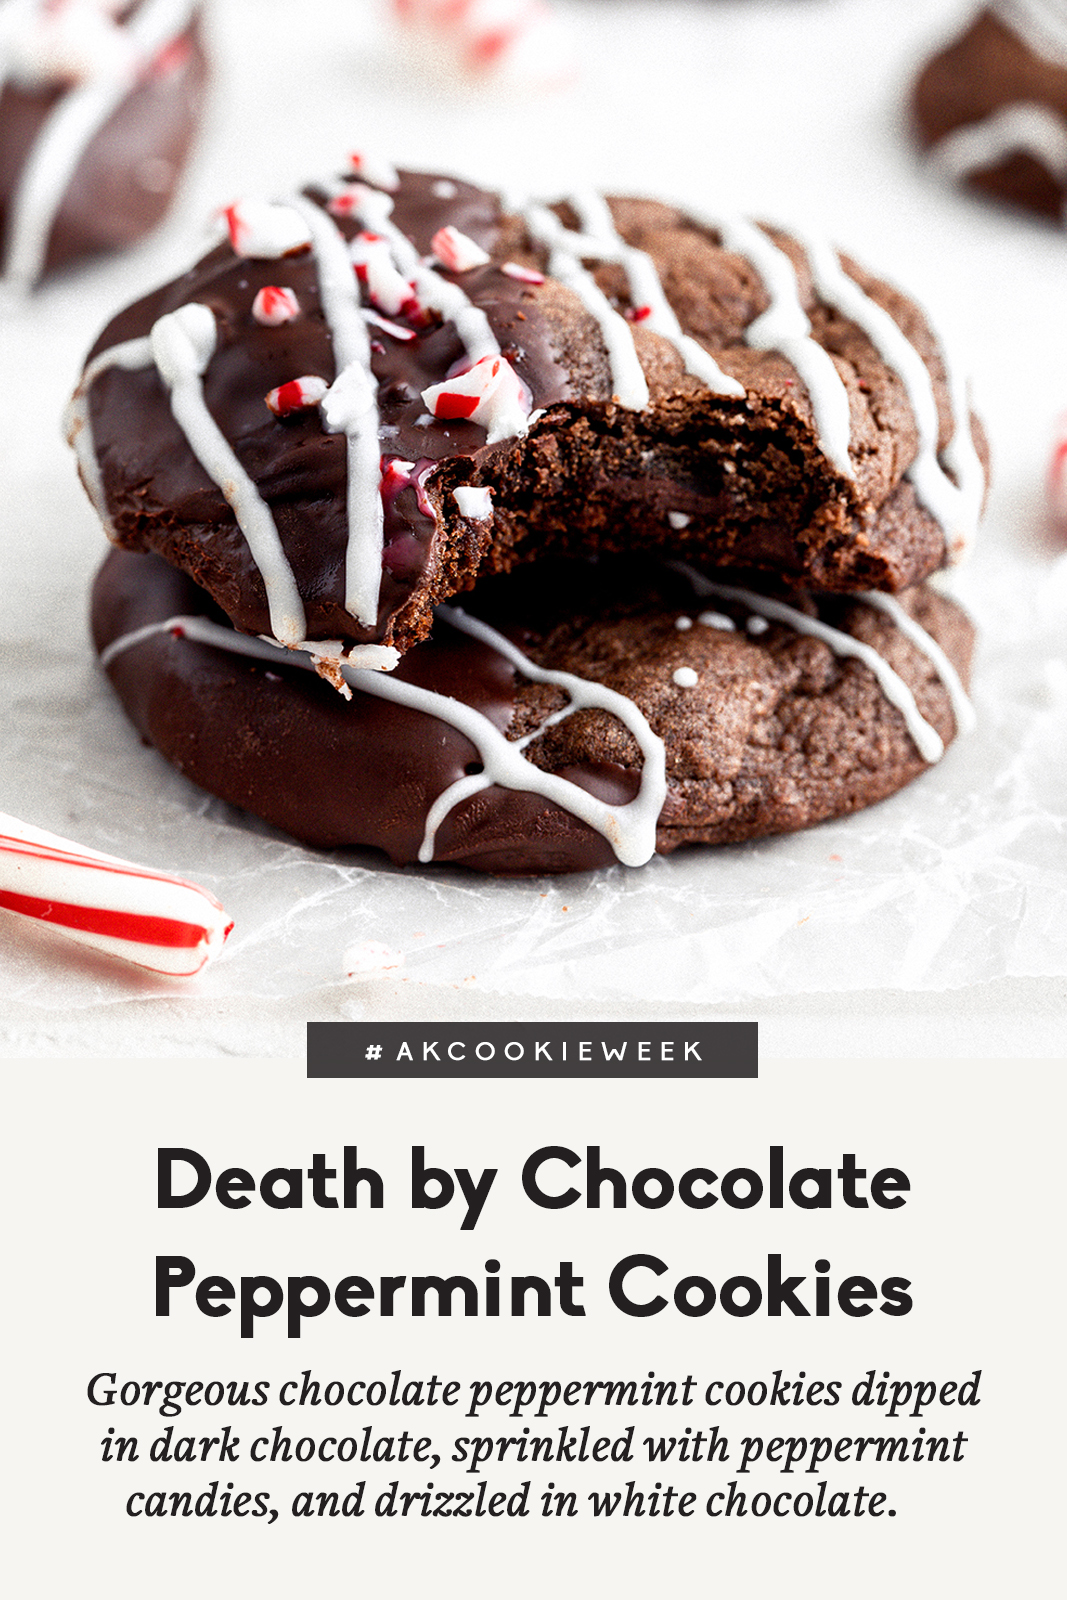 chocolate peppermint cookies with a title underneath